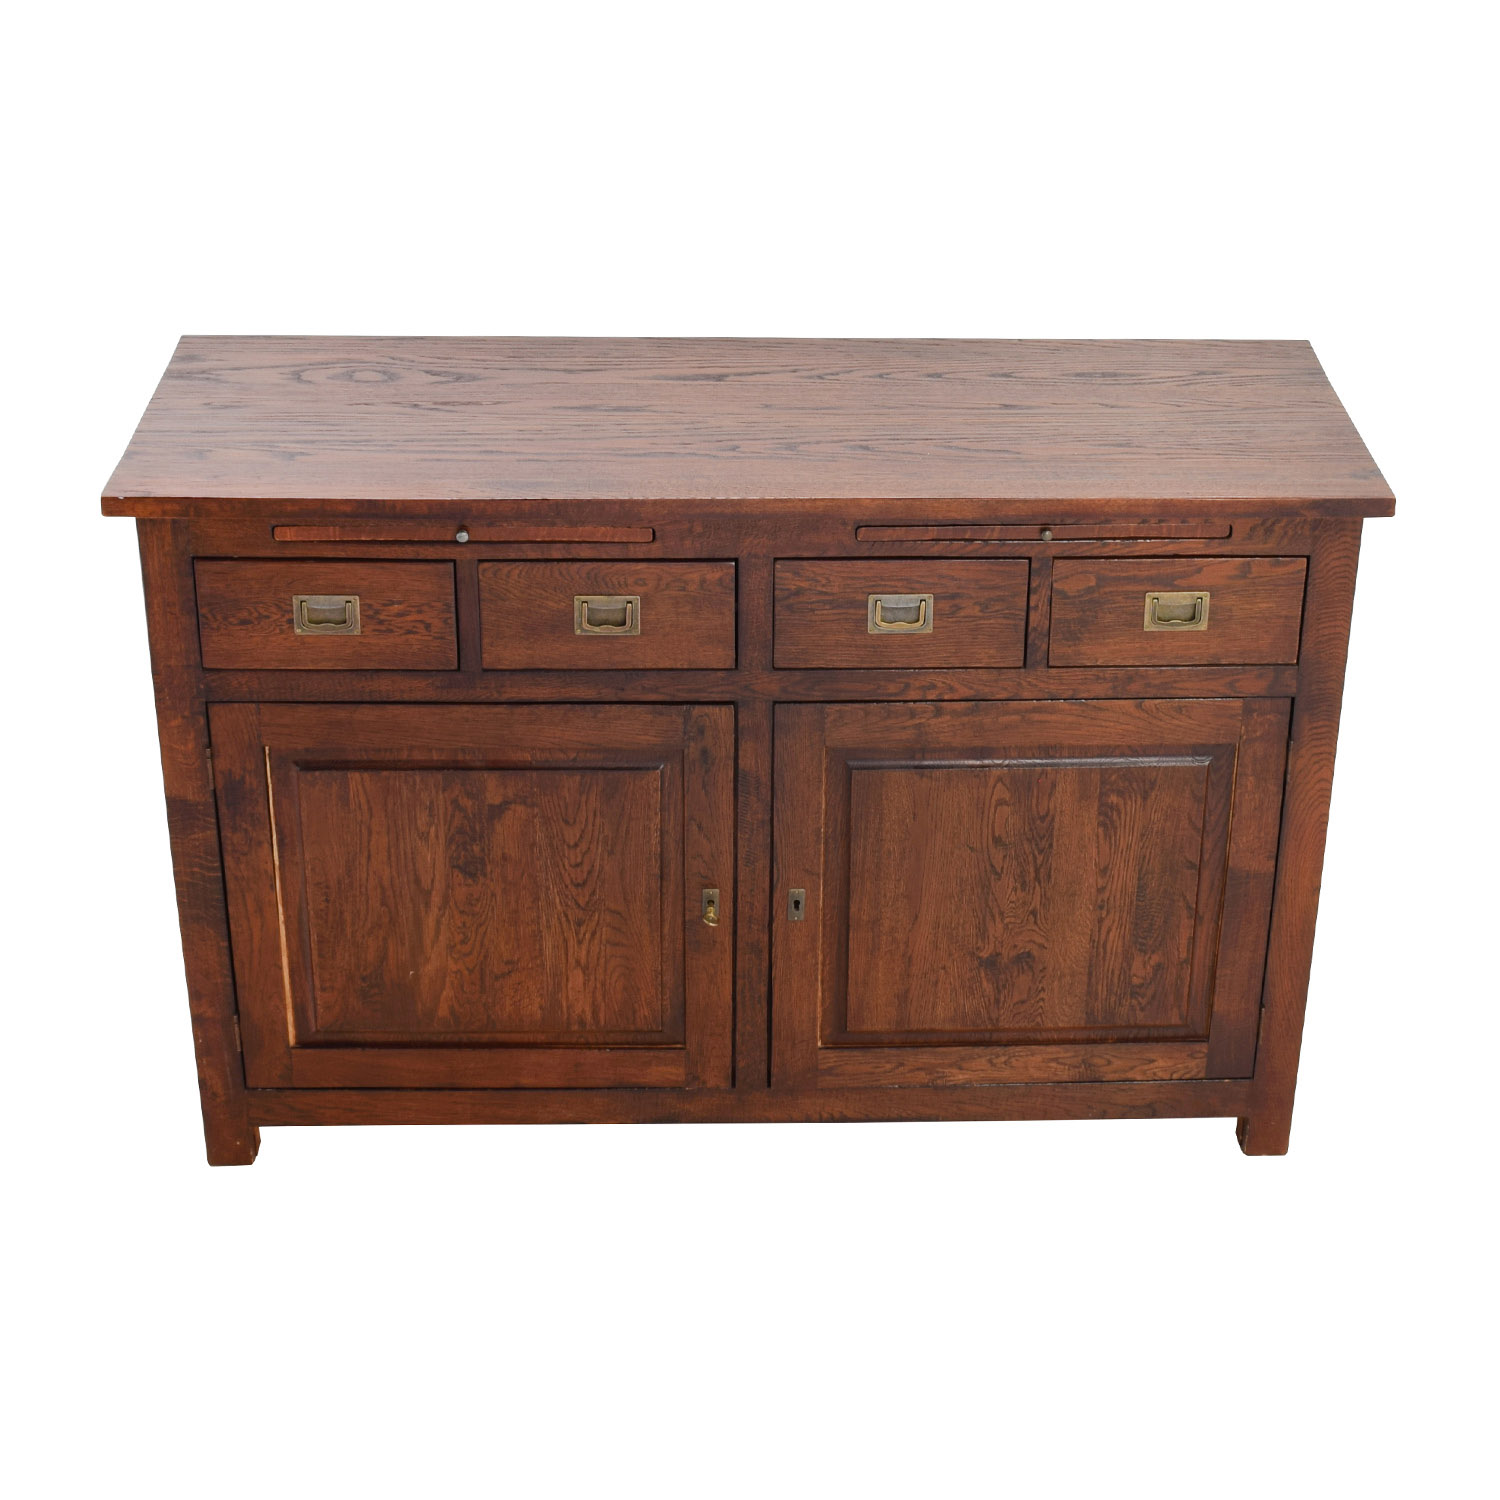 Crate and Barrel Crate & Barrel Bordeaux Buffet Sideboard used